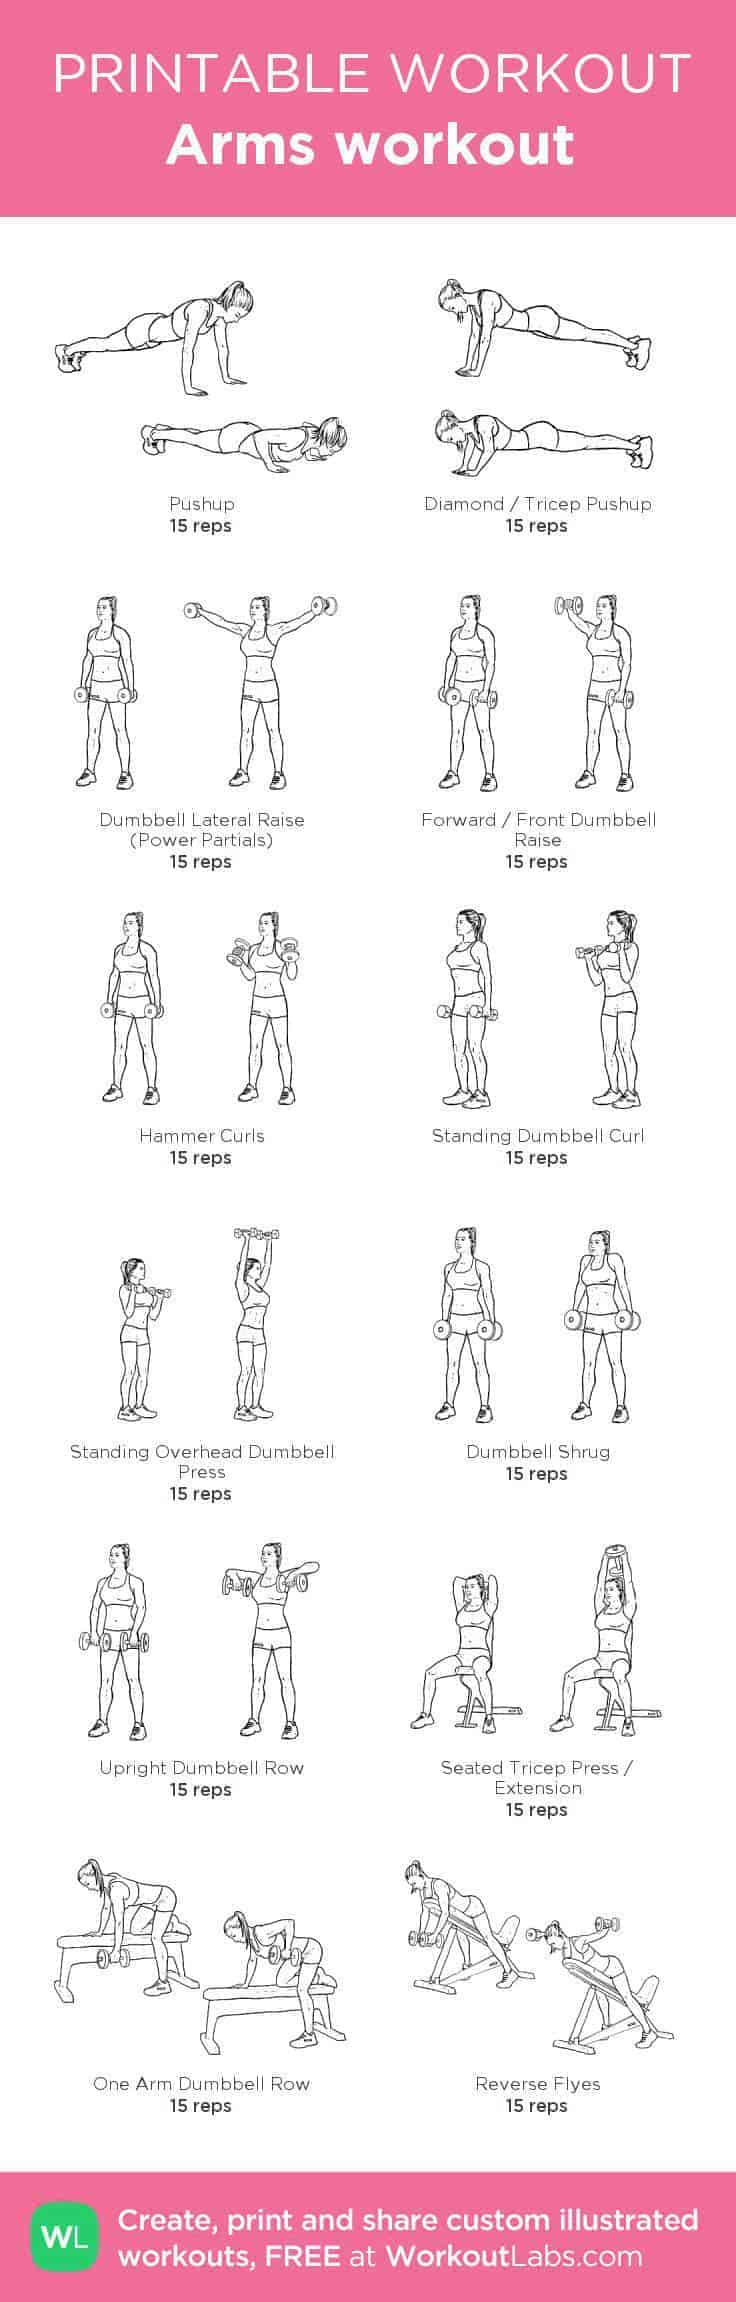 women's arm workout printable